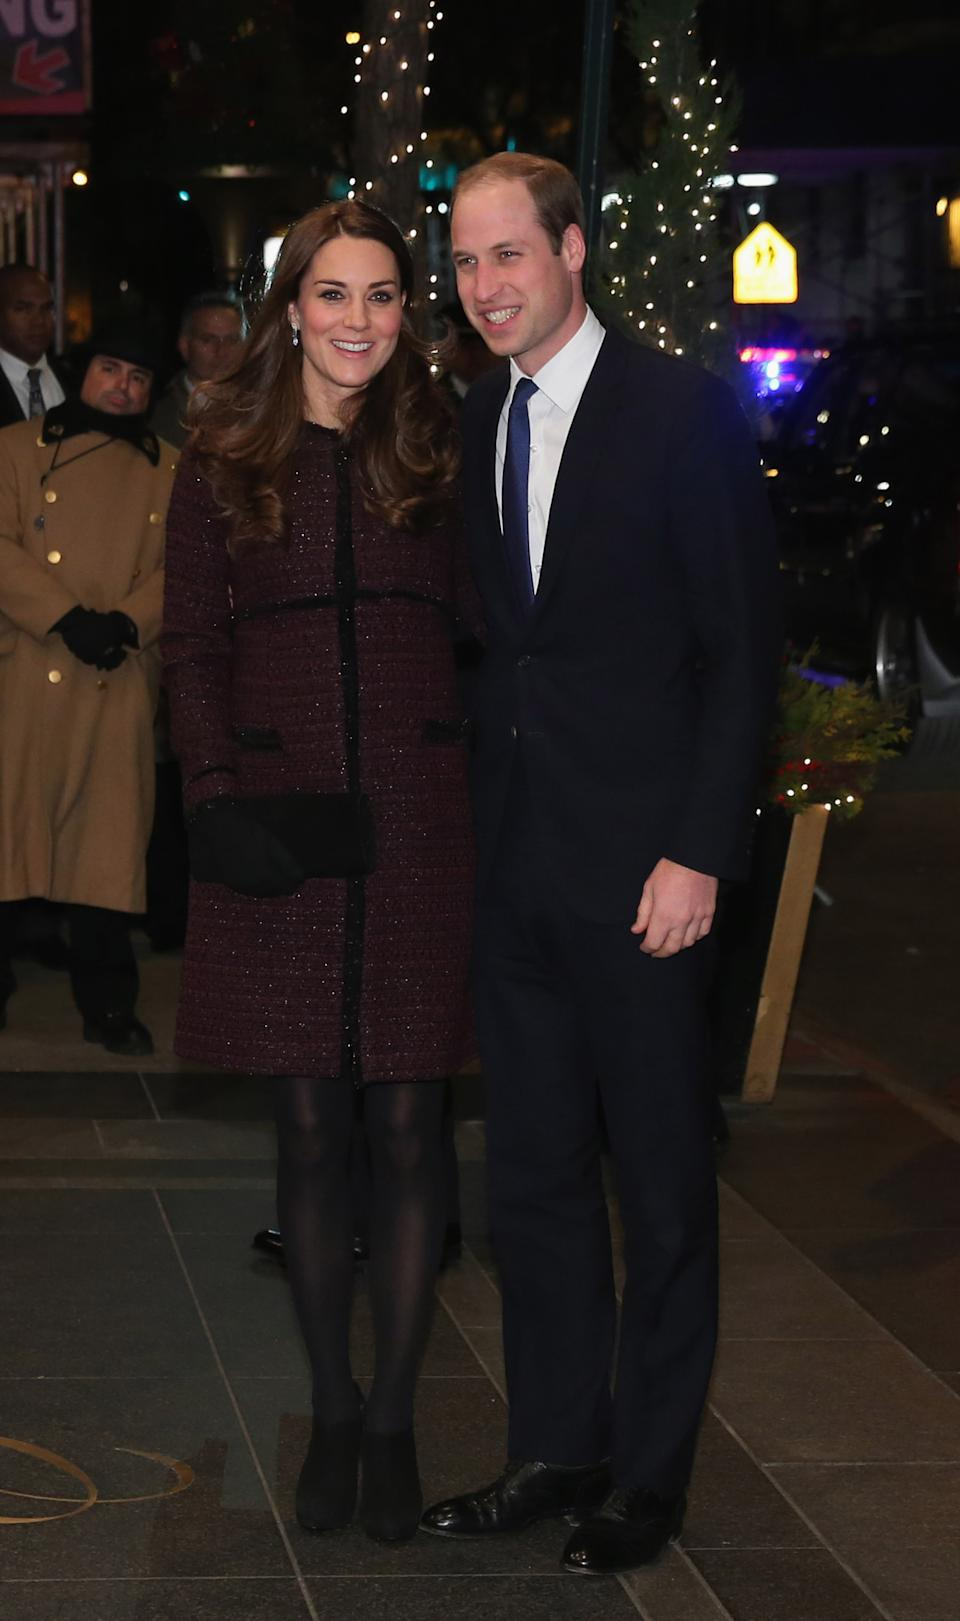 <p>In 2014 the couple visited New York for an official tour, with engagements ranging from visits to the 9/11 memorial to basketball games. (Neilson Barnard/Getty Images)</p>